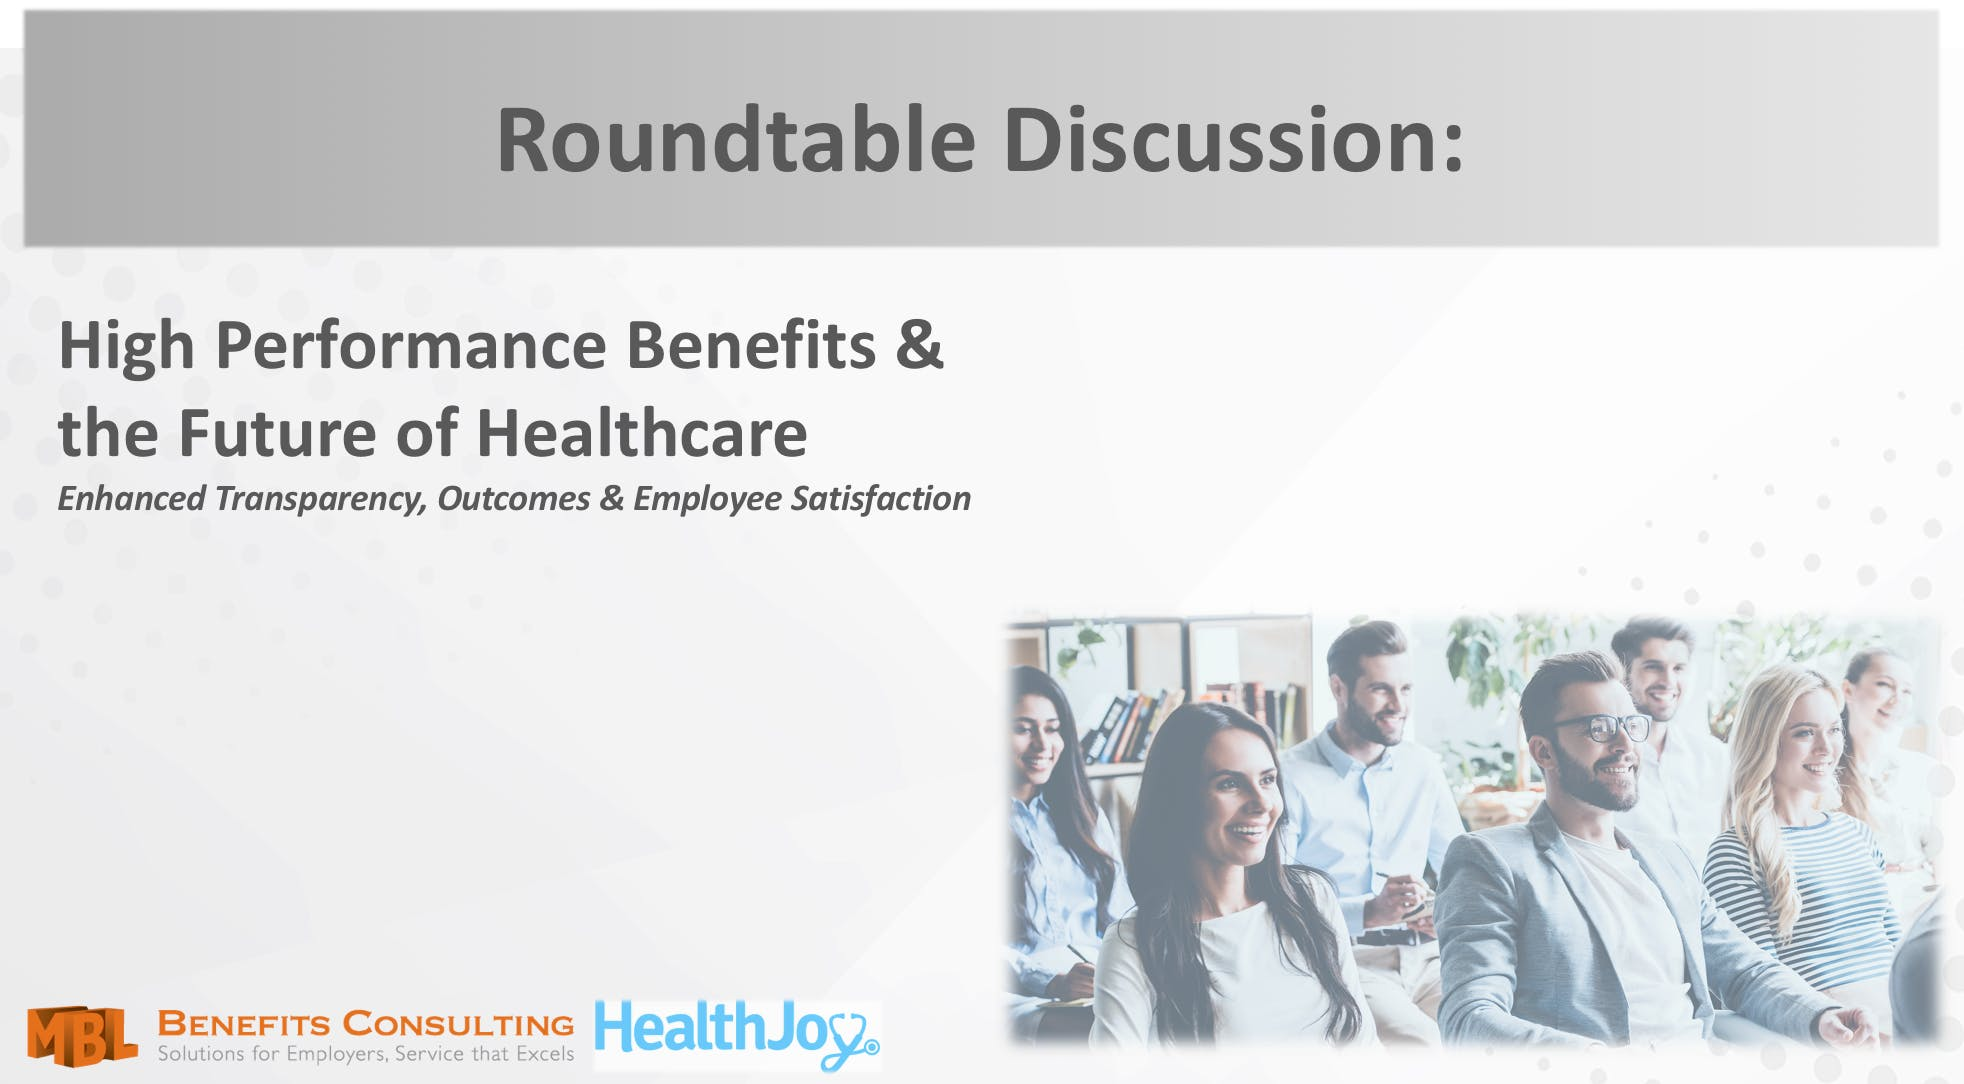 High Performance Benefits-Enhanced Transparency Outcomes & Employee Satisfaction